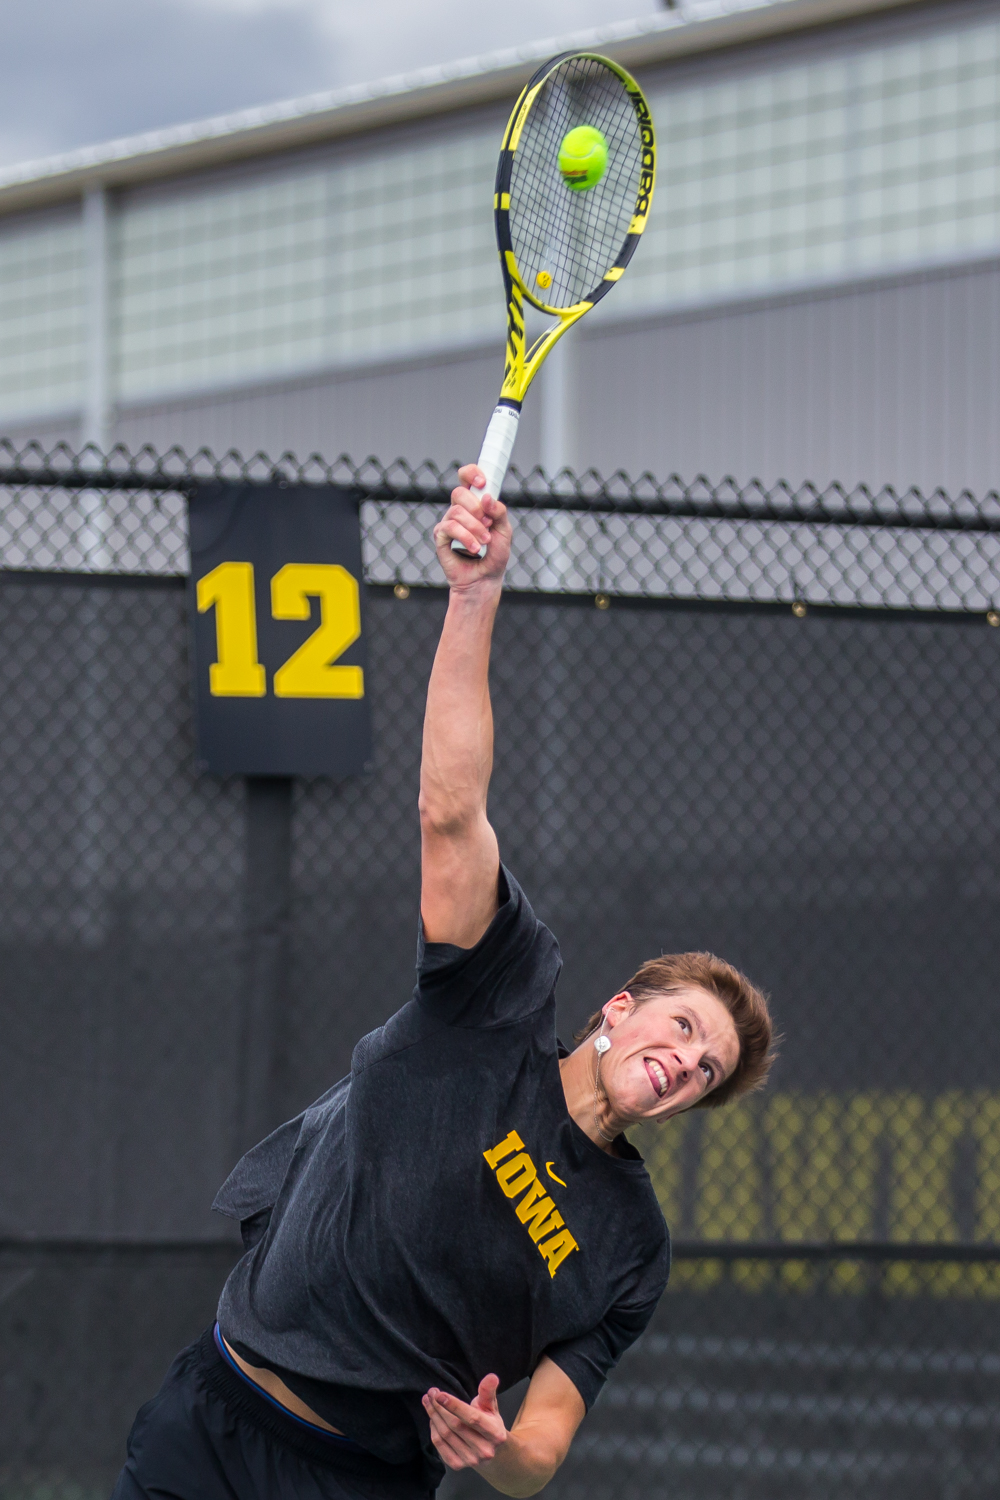 Iowa%27s+Joe+Tyler+hits+a+serve+during+a+men%27s+tennis+match+between+Iowa+and+Ohio+State+at+the+HTRC+on+Sunday%2C+April+7%2C+2019.+The+Buckeyes+defeated+the+Hawkeyes%2C+4-1.